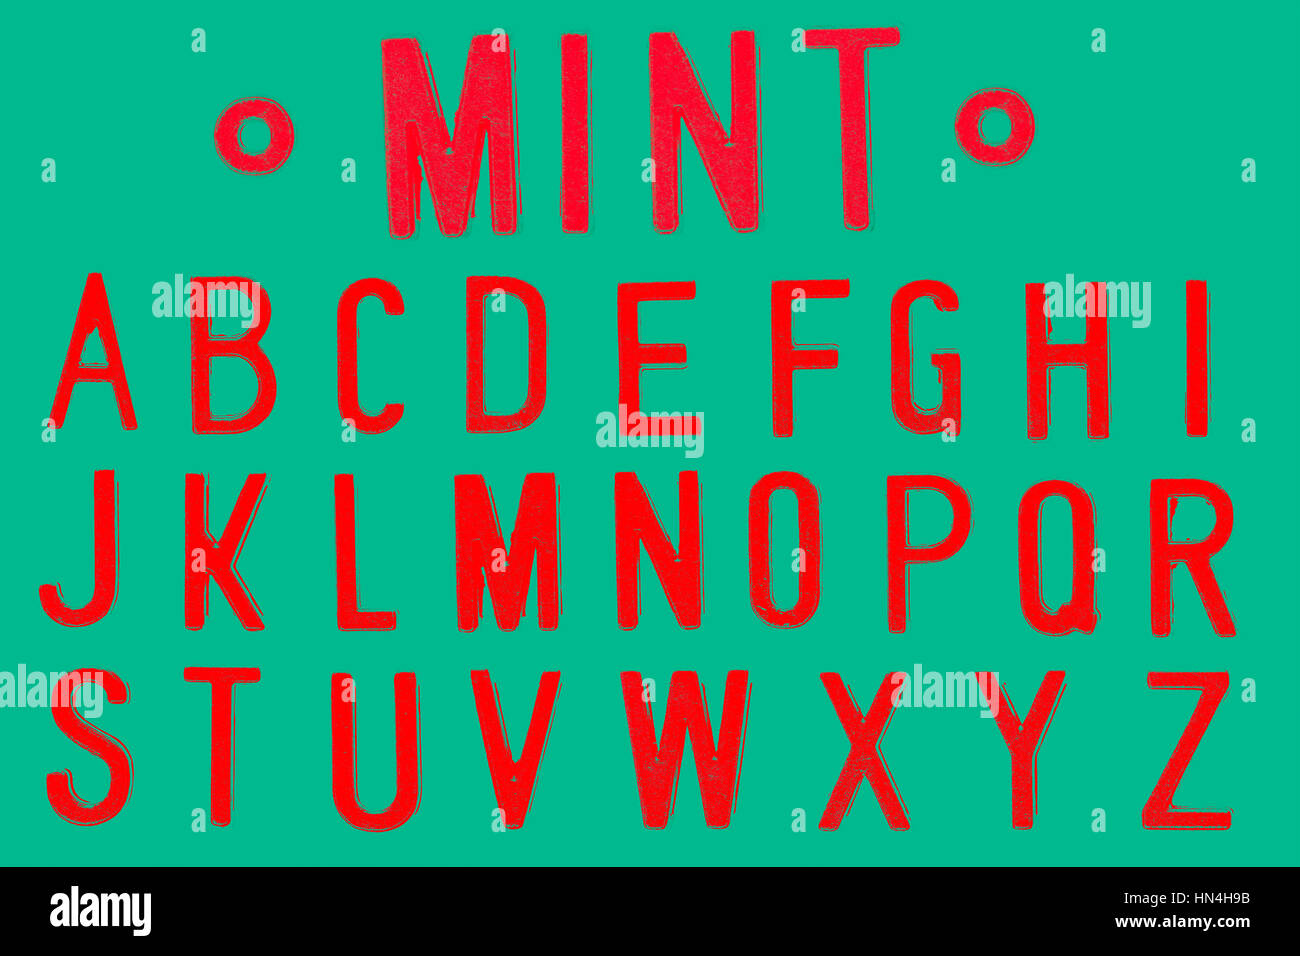 Mint Font, Retro style font face or Font type letter A to Z - Stock Image